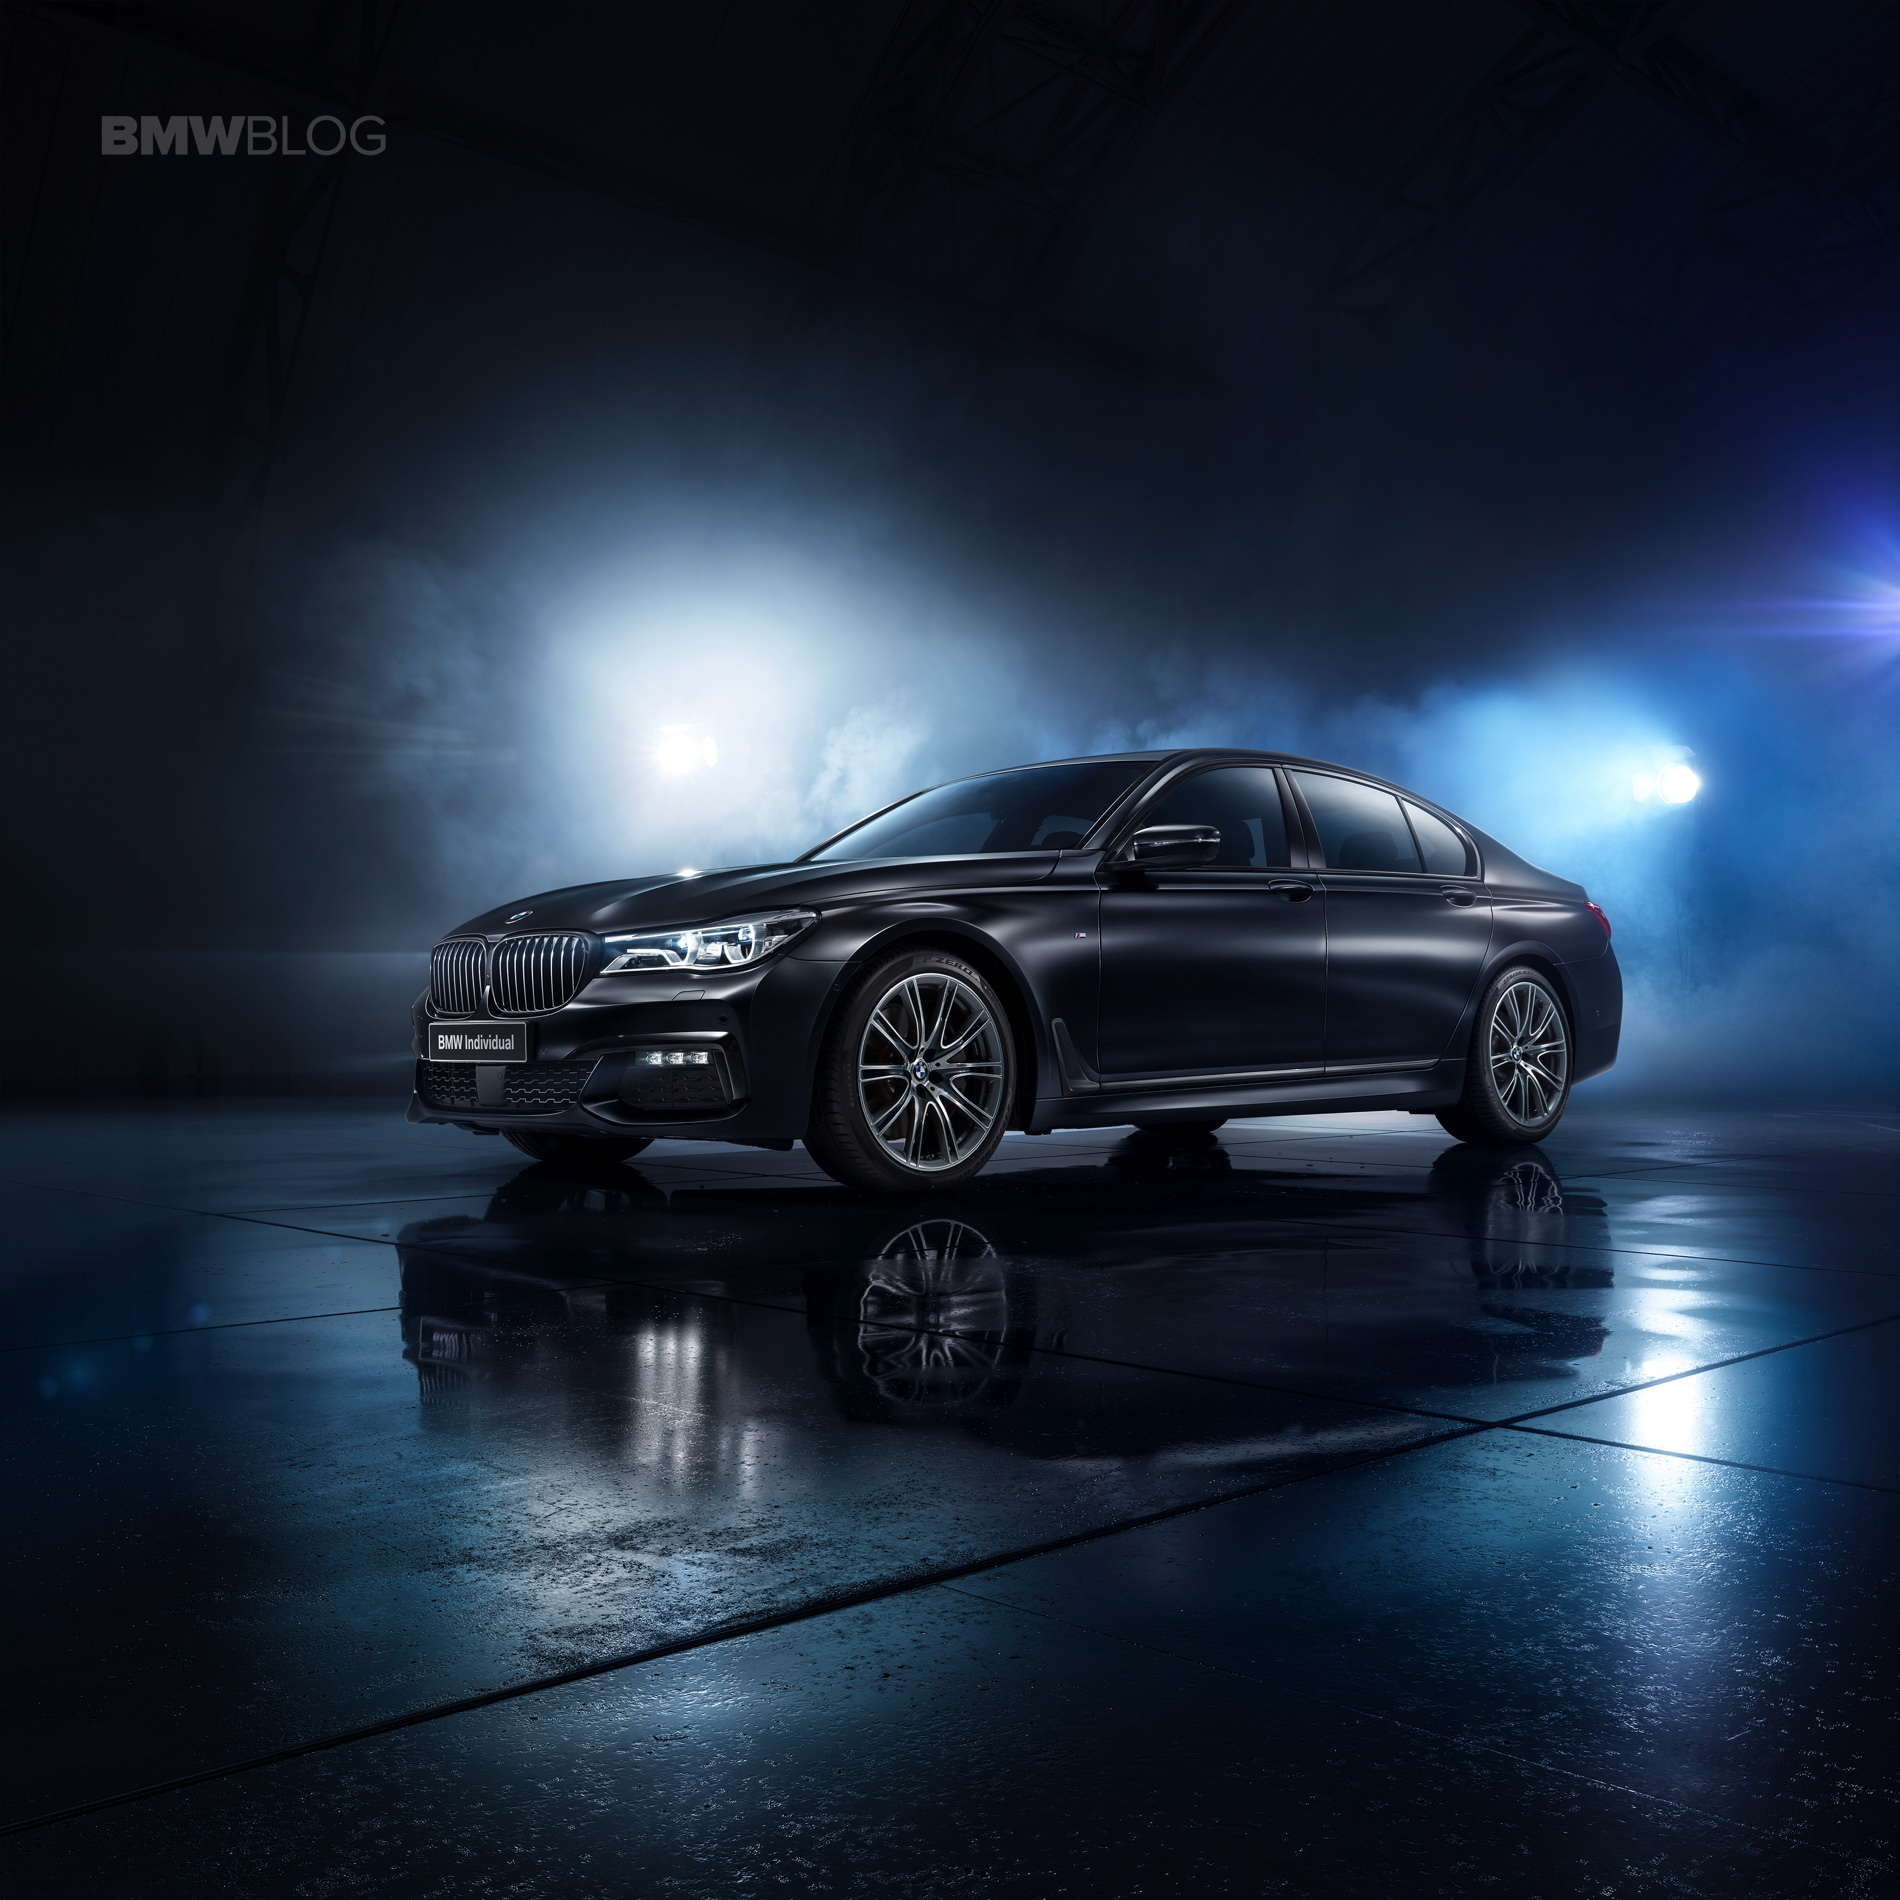 The BMW 7 Series Individual Edition Black Ice 01